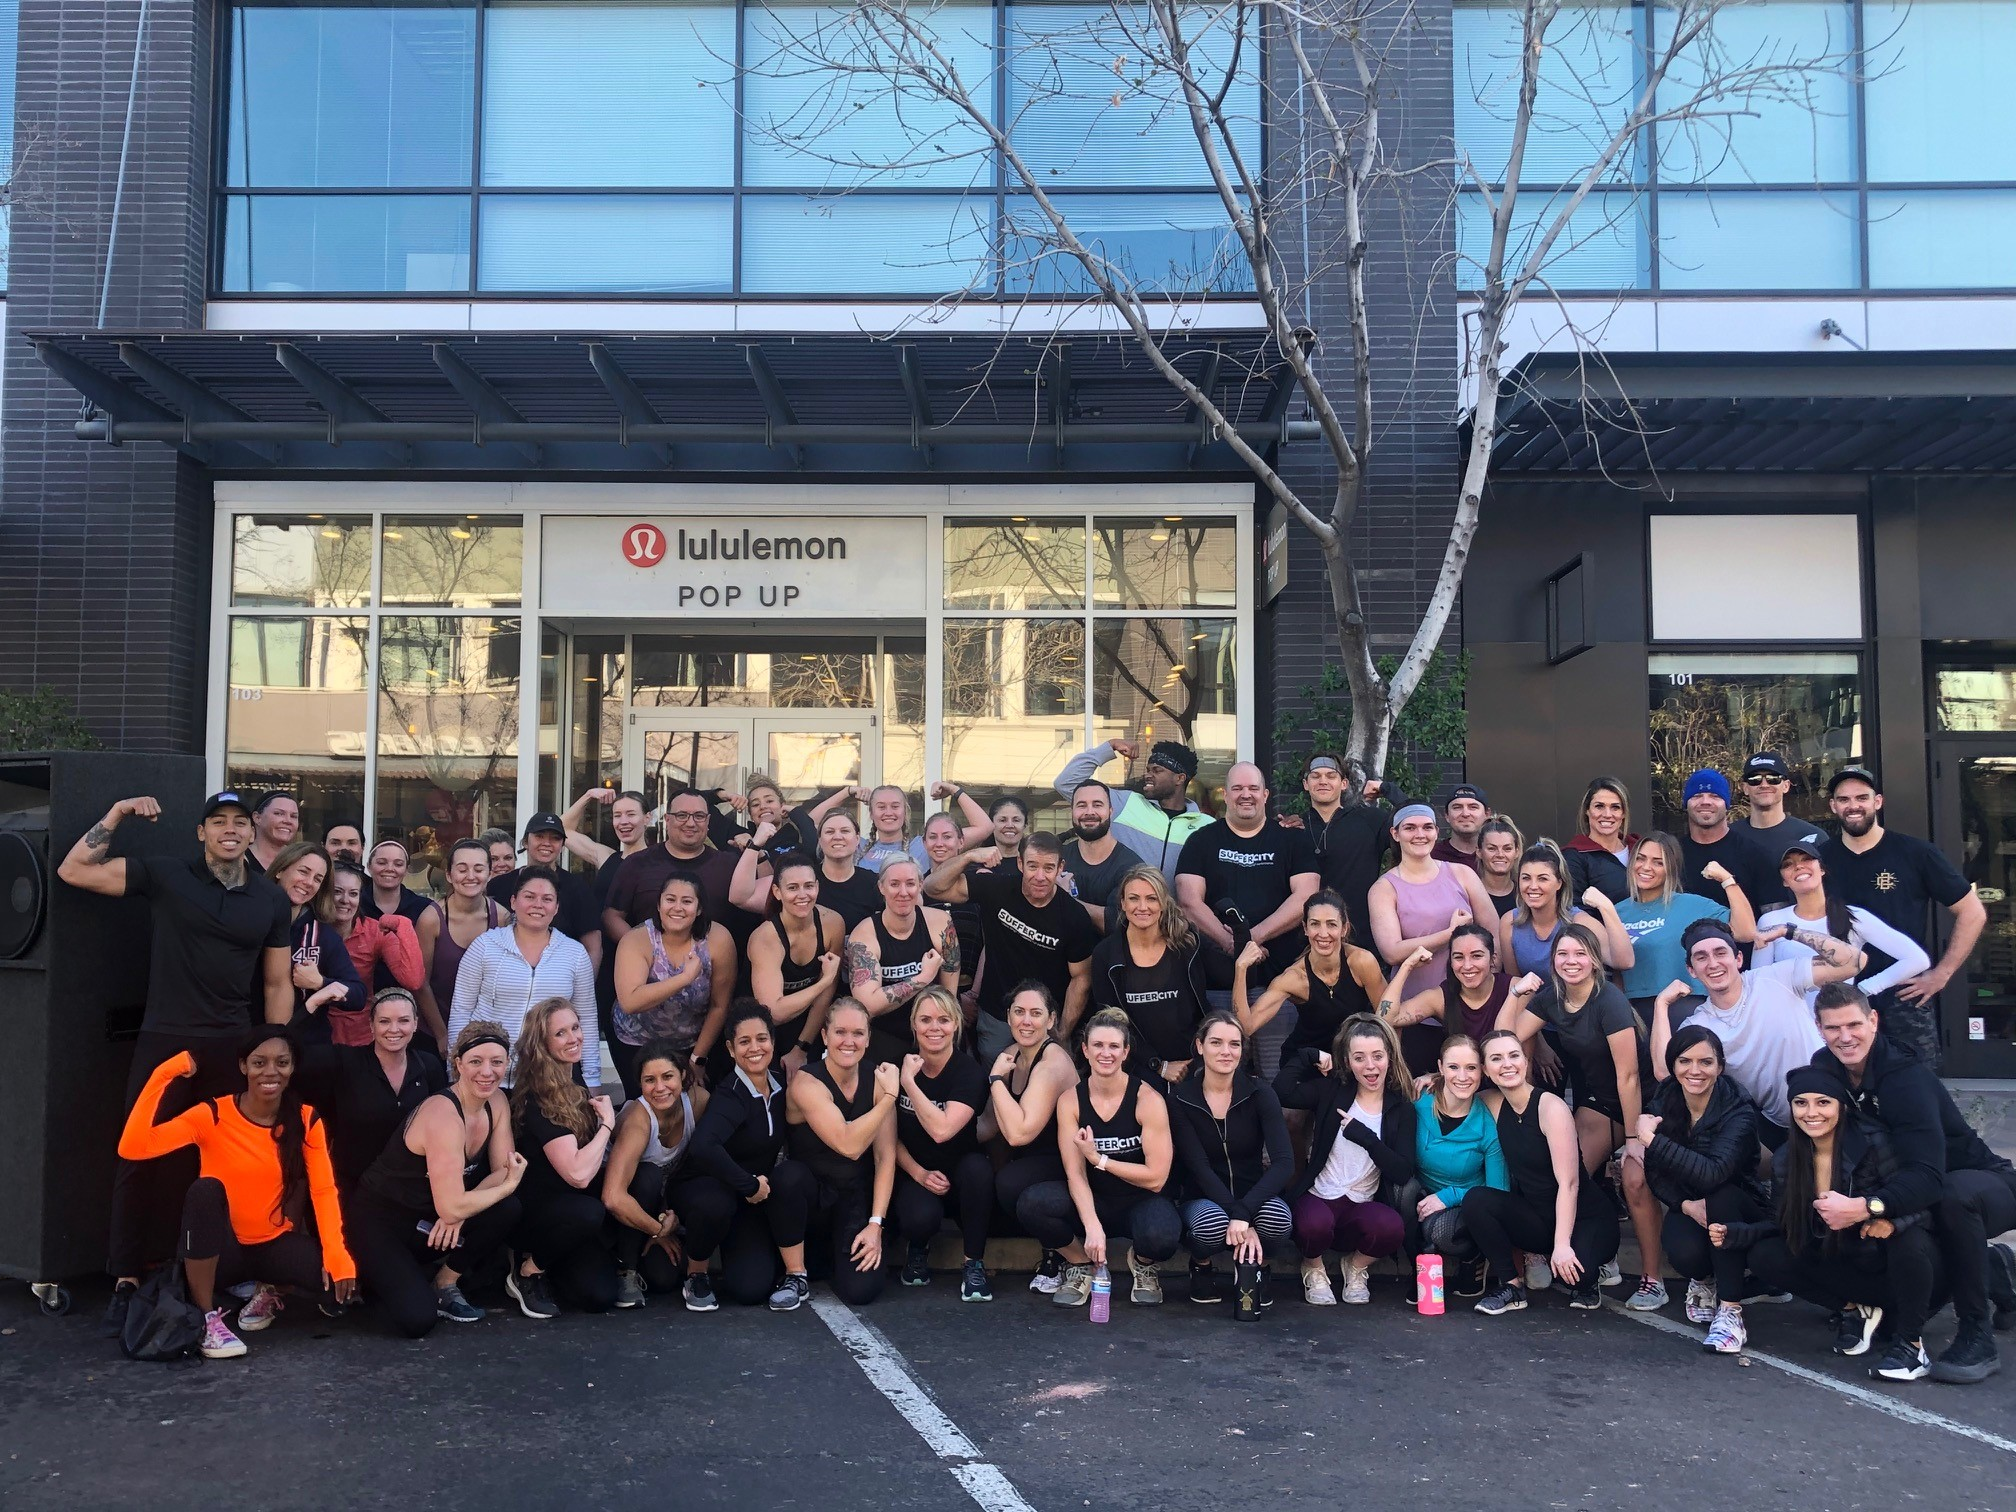 100 people in front of the lululemon store flexing their arm muscles